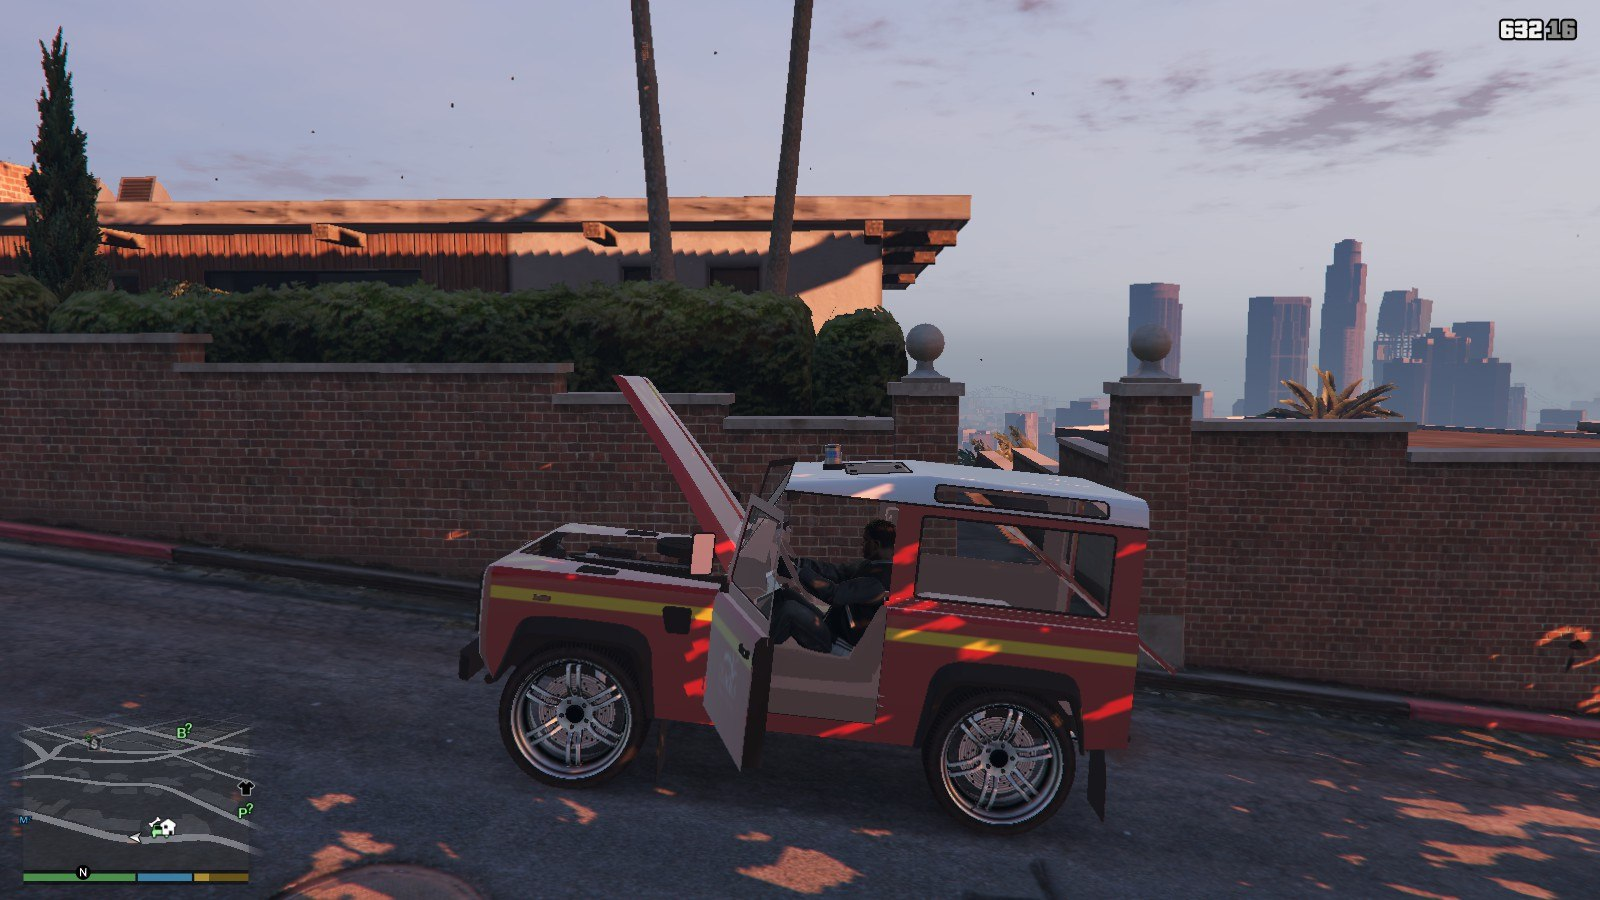 Land Rover Defender GTA5 Mods (7)